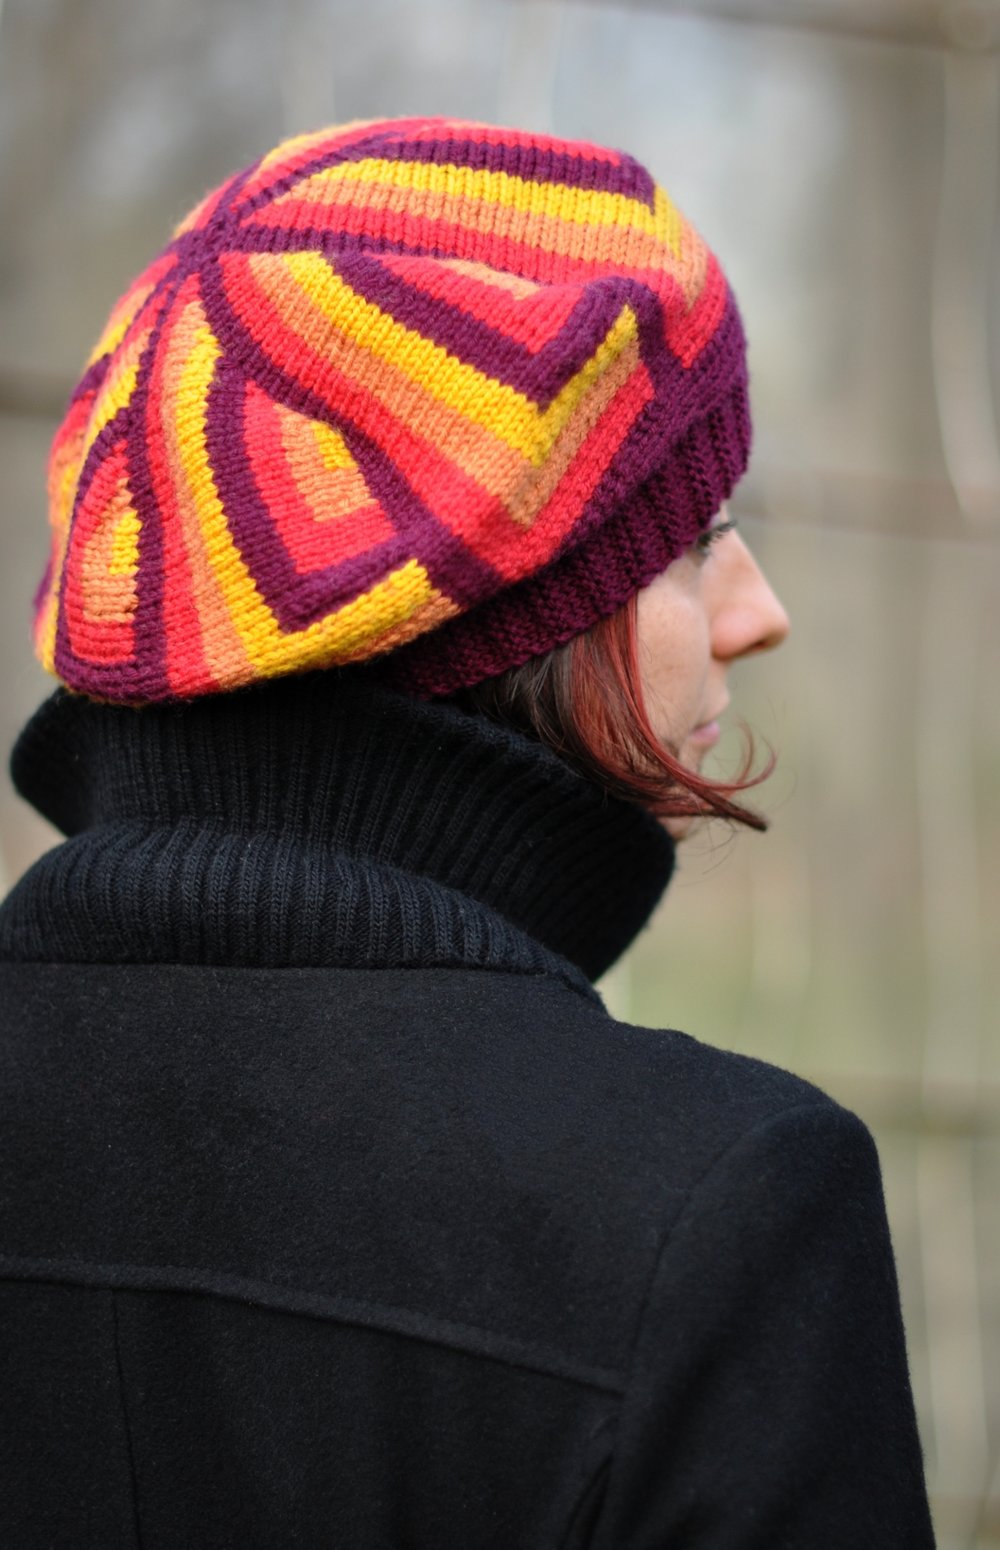 knitting pattern for hand knit sideways Hat with unique intarsia pattern